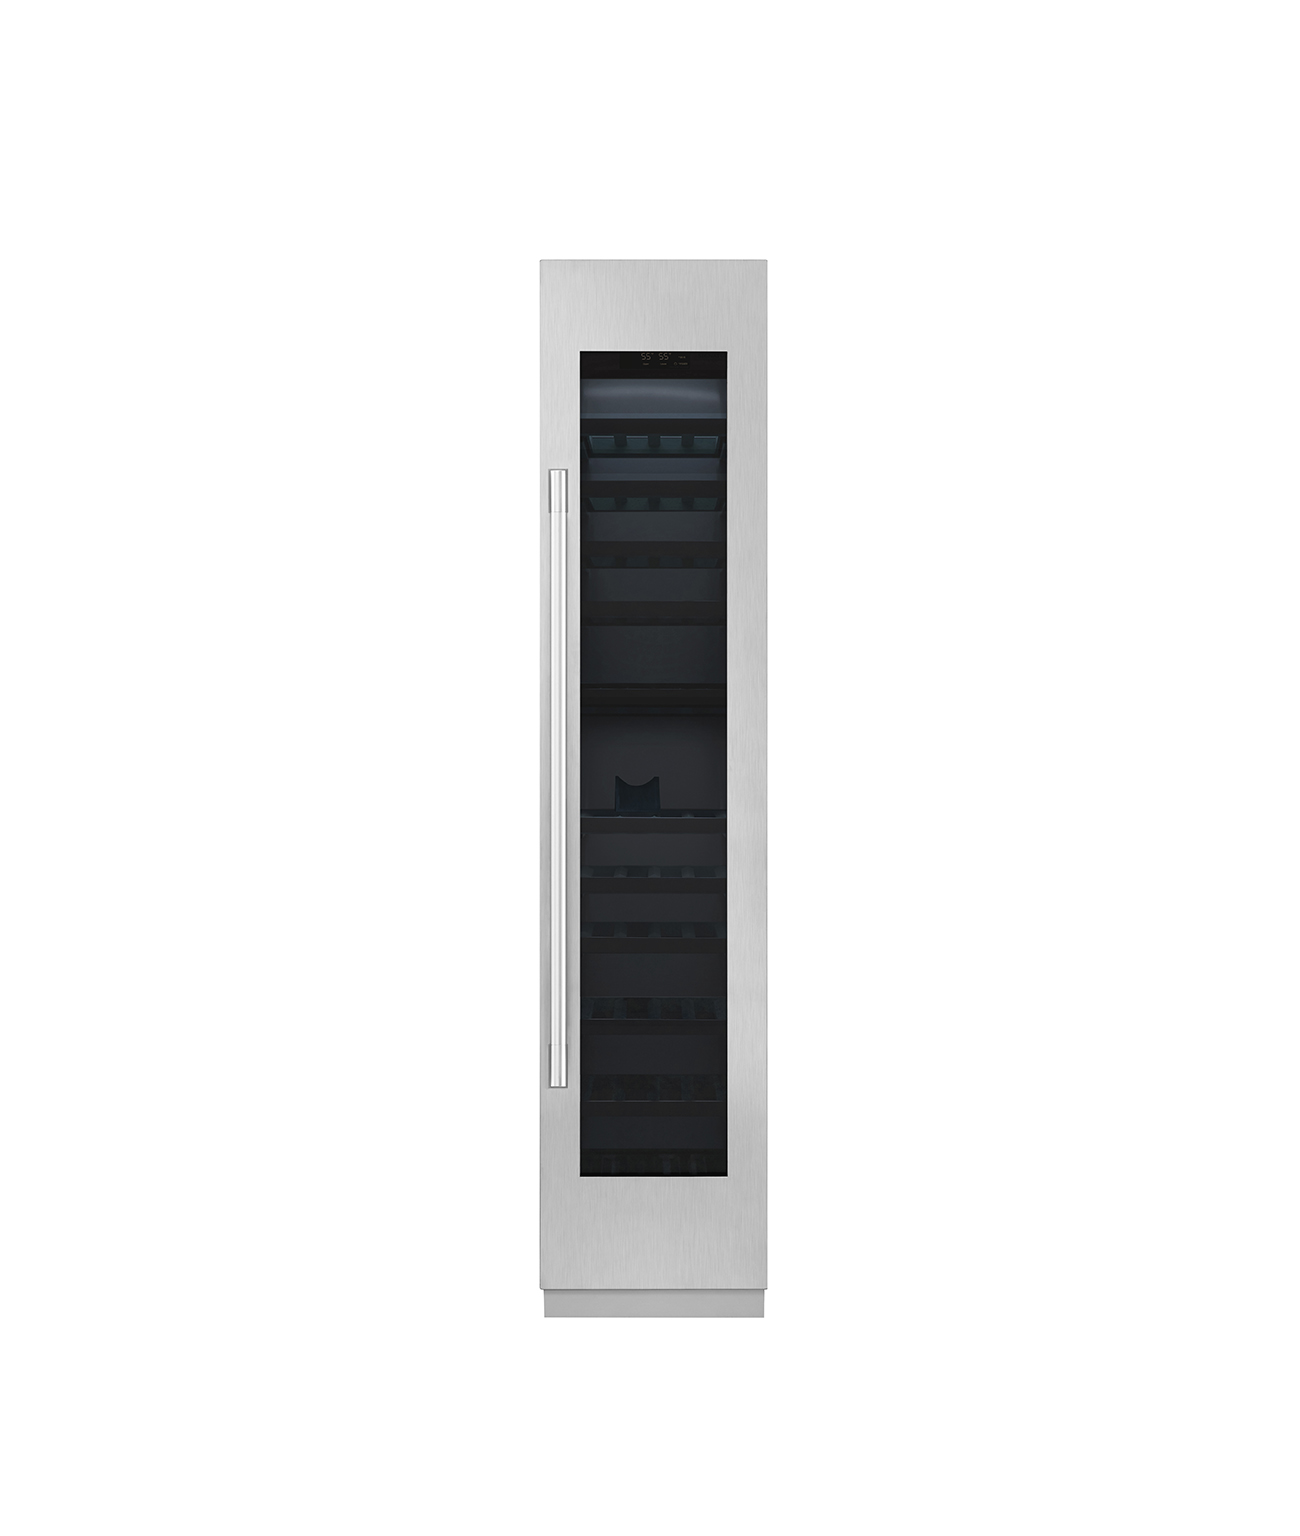 18-inch Integrated Column Wine Refrigerator | Wine Columns | Signature Kitchen Suite